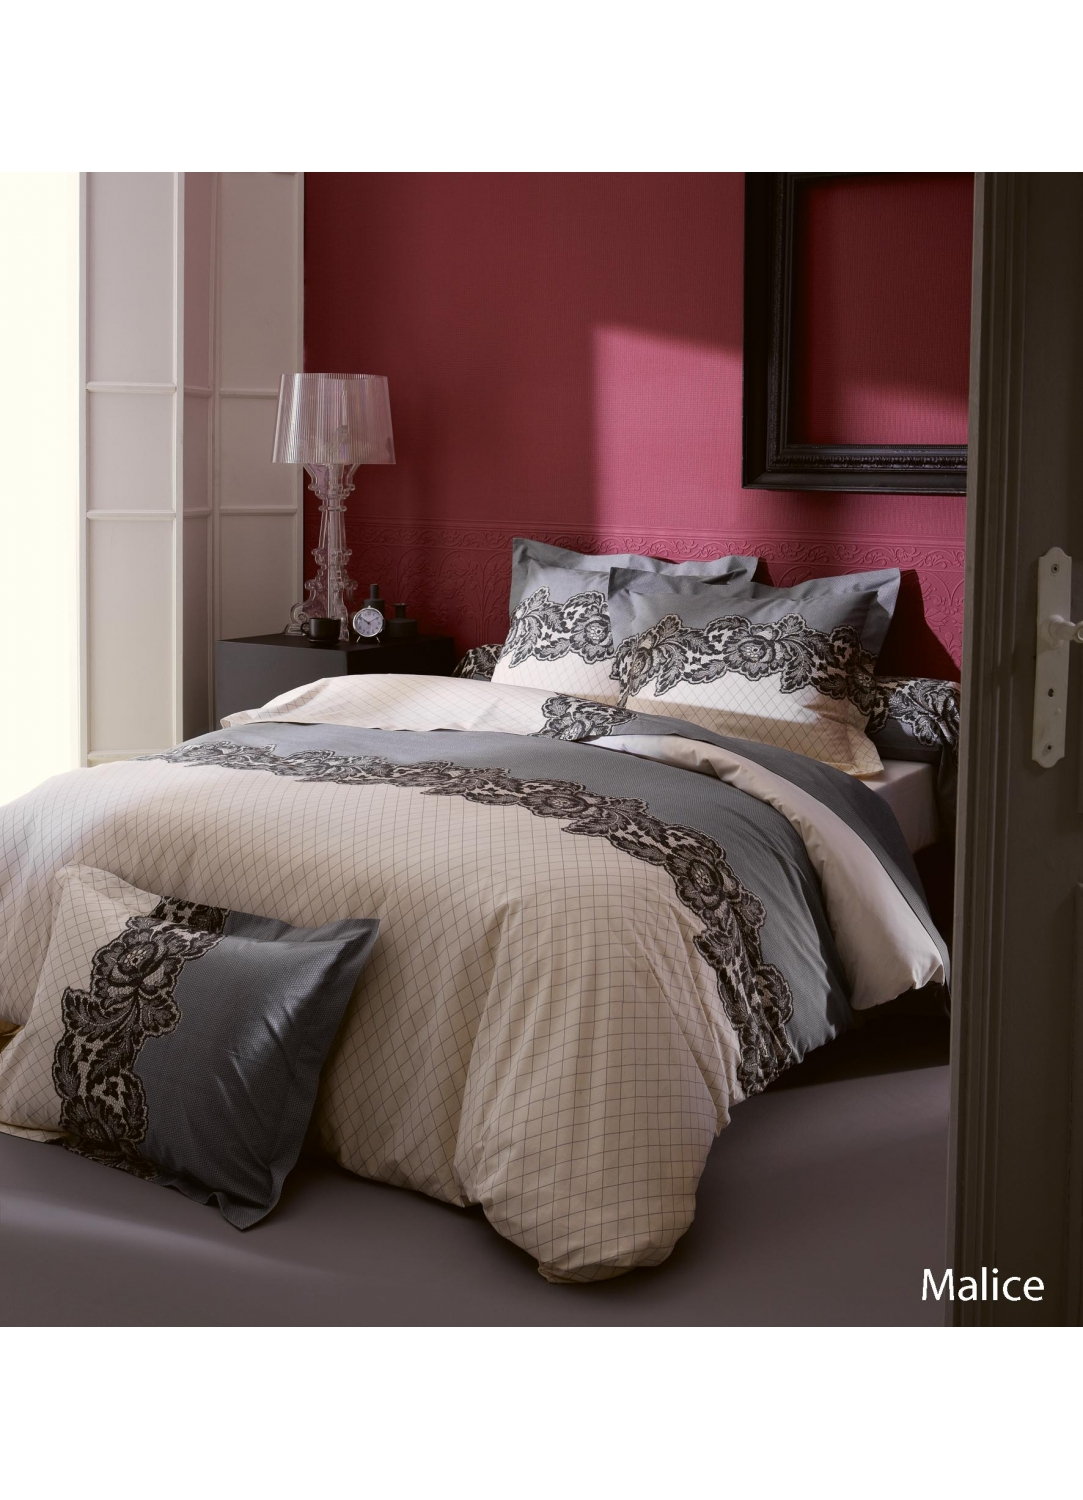 taie d oreiller malice imprim s dentelle gris homemaison vente en ligne taies d. Black Bedroom Furniture Sets. Home Design Ideas